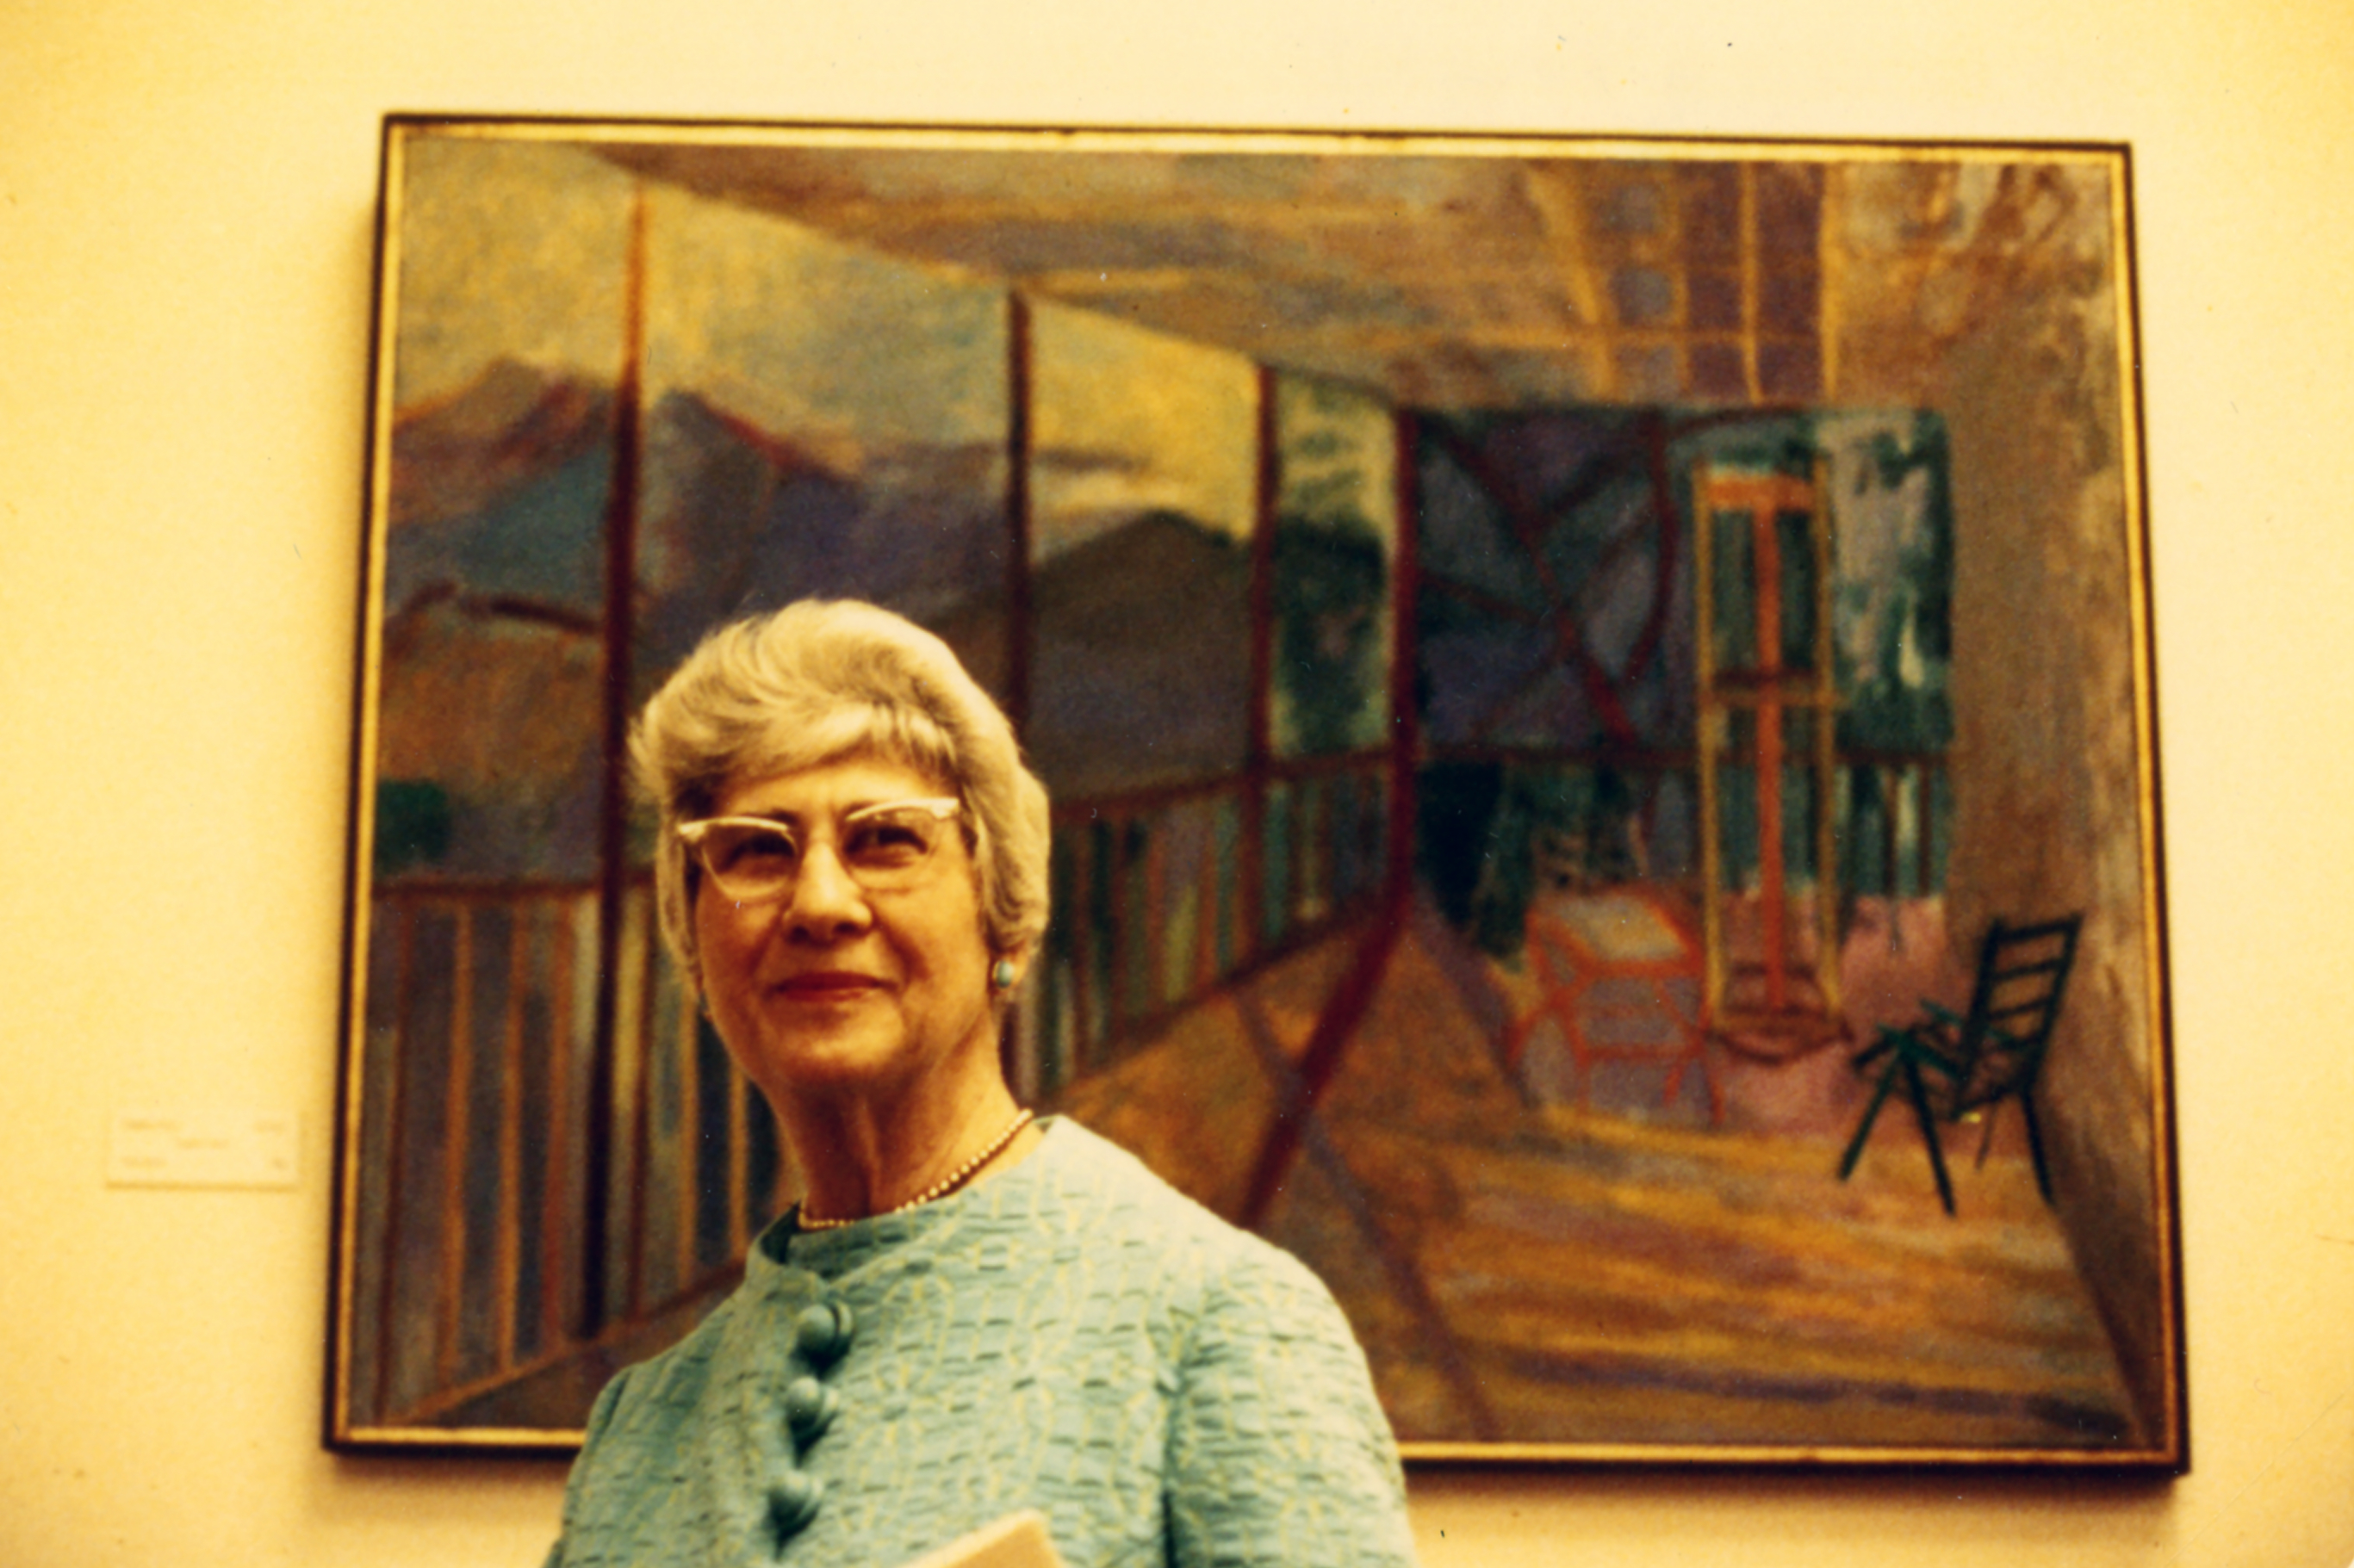 M5_B17_Painters Porch_Pollak in Front of Painting_600ppi.jpg